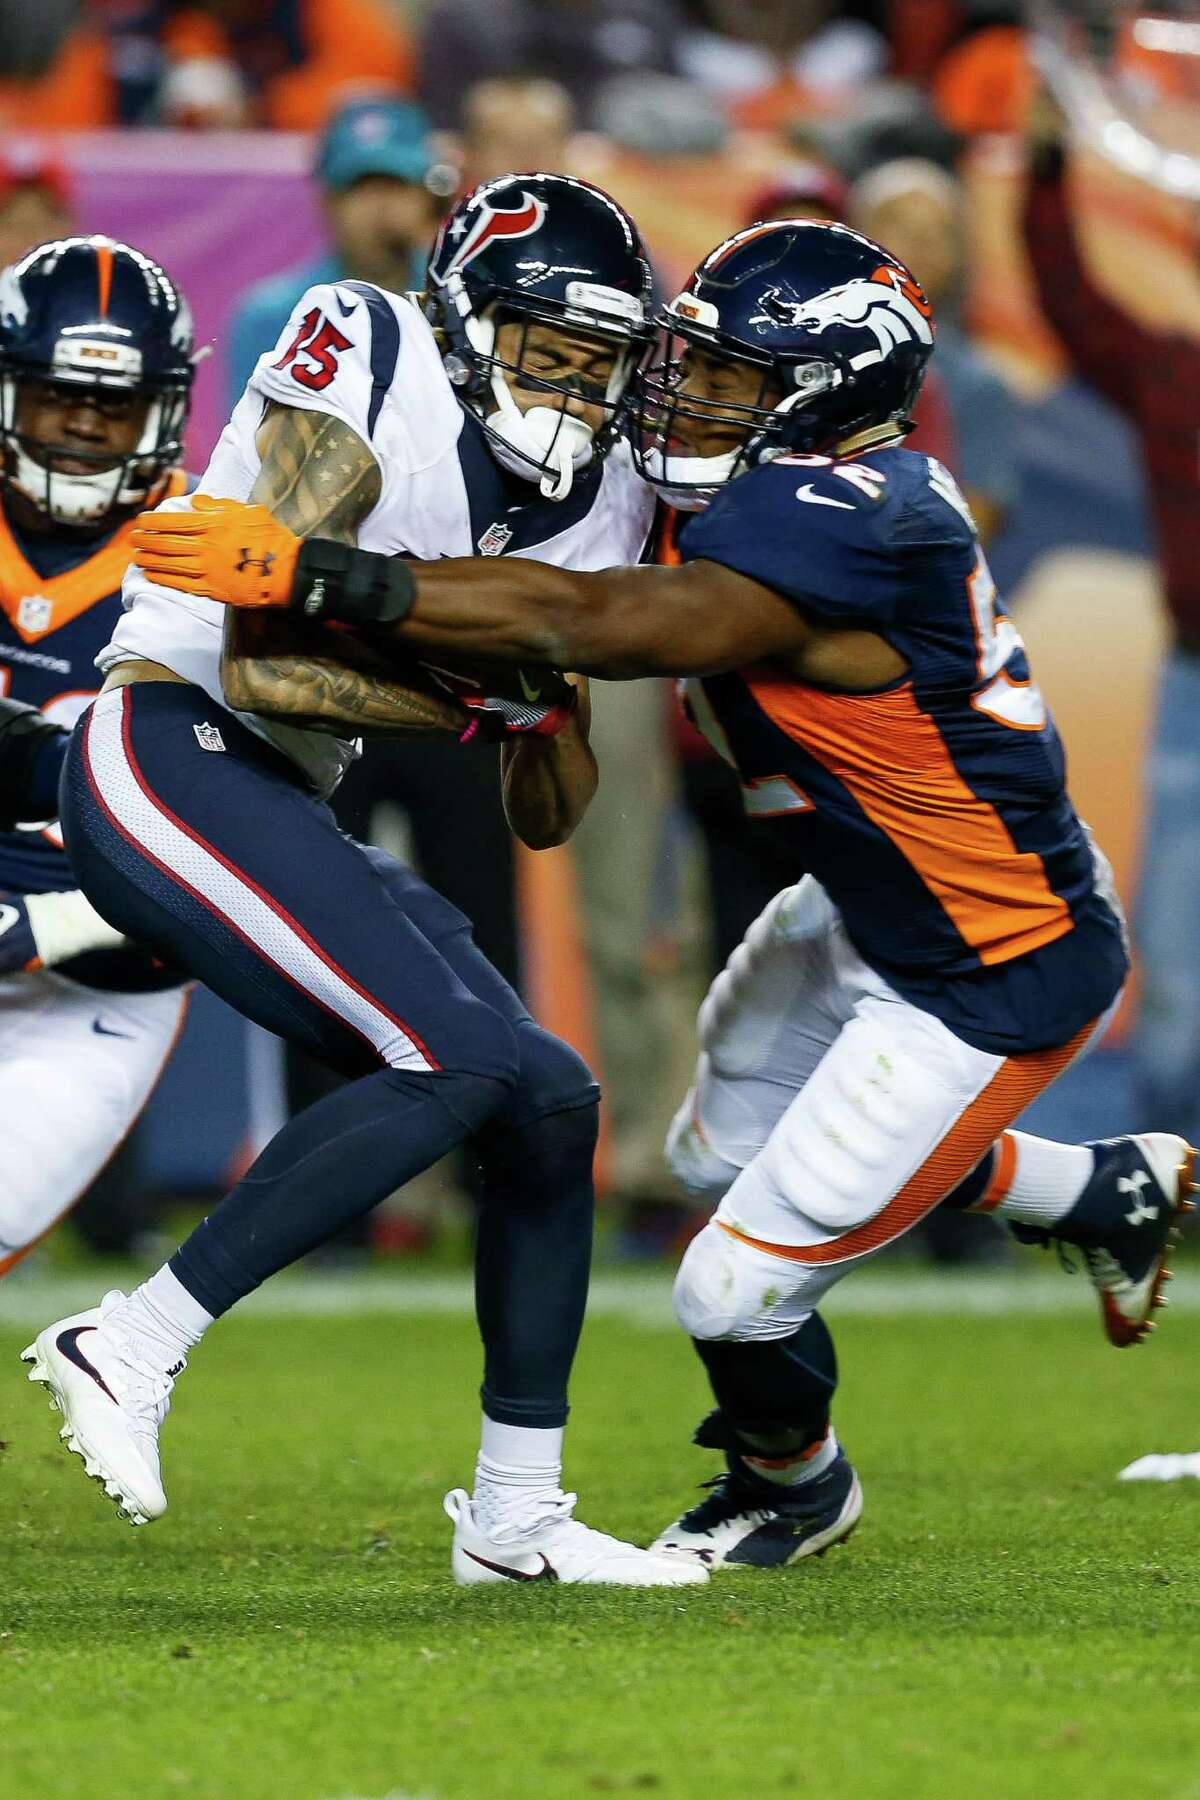 Houston Texans wide receiver Will Fuller (15) takes a hit from Denver Broncos outside linebacker Corey Nelson (52) during the fourth quarter of an NFL football game at Sports Authority Field at Mile High on Monday, Oct. 24, 2016, in Denver.